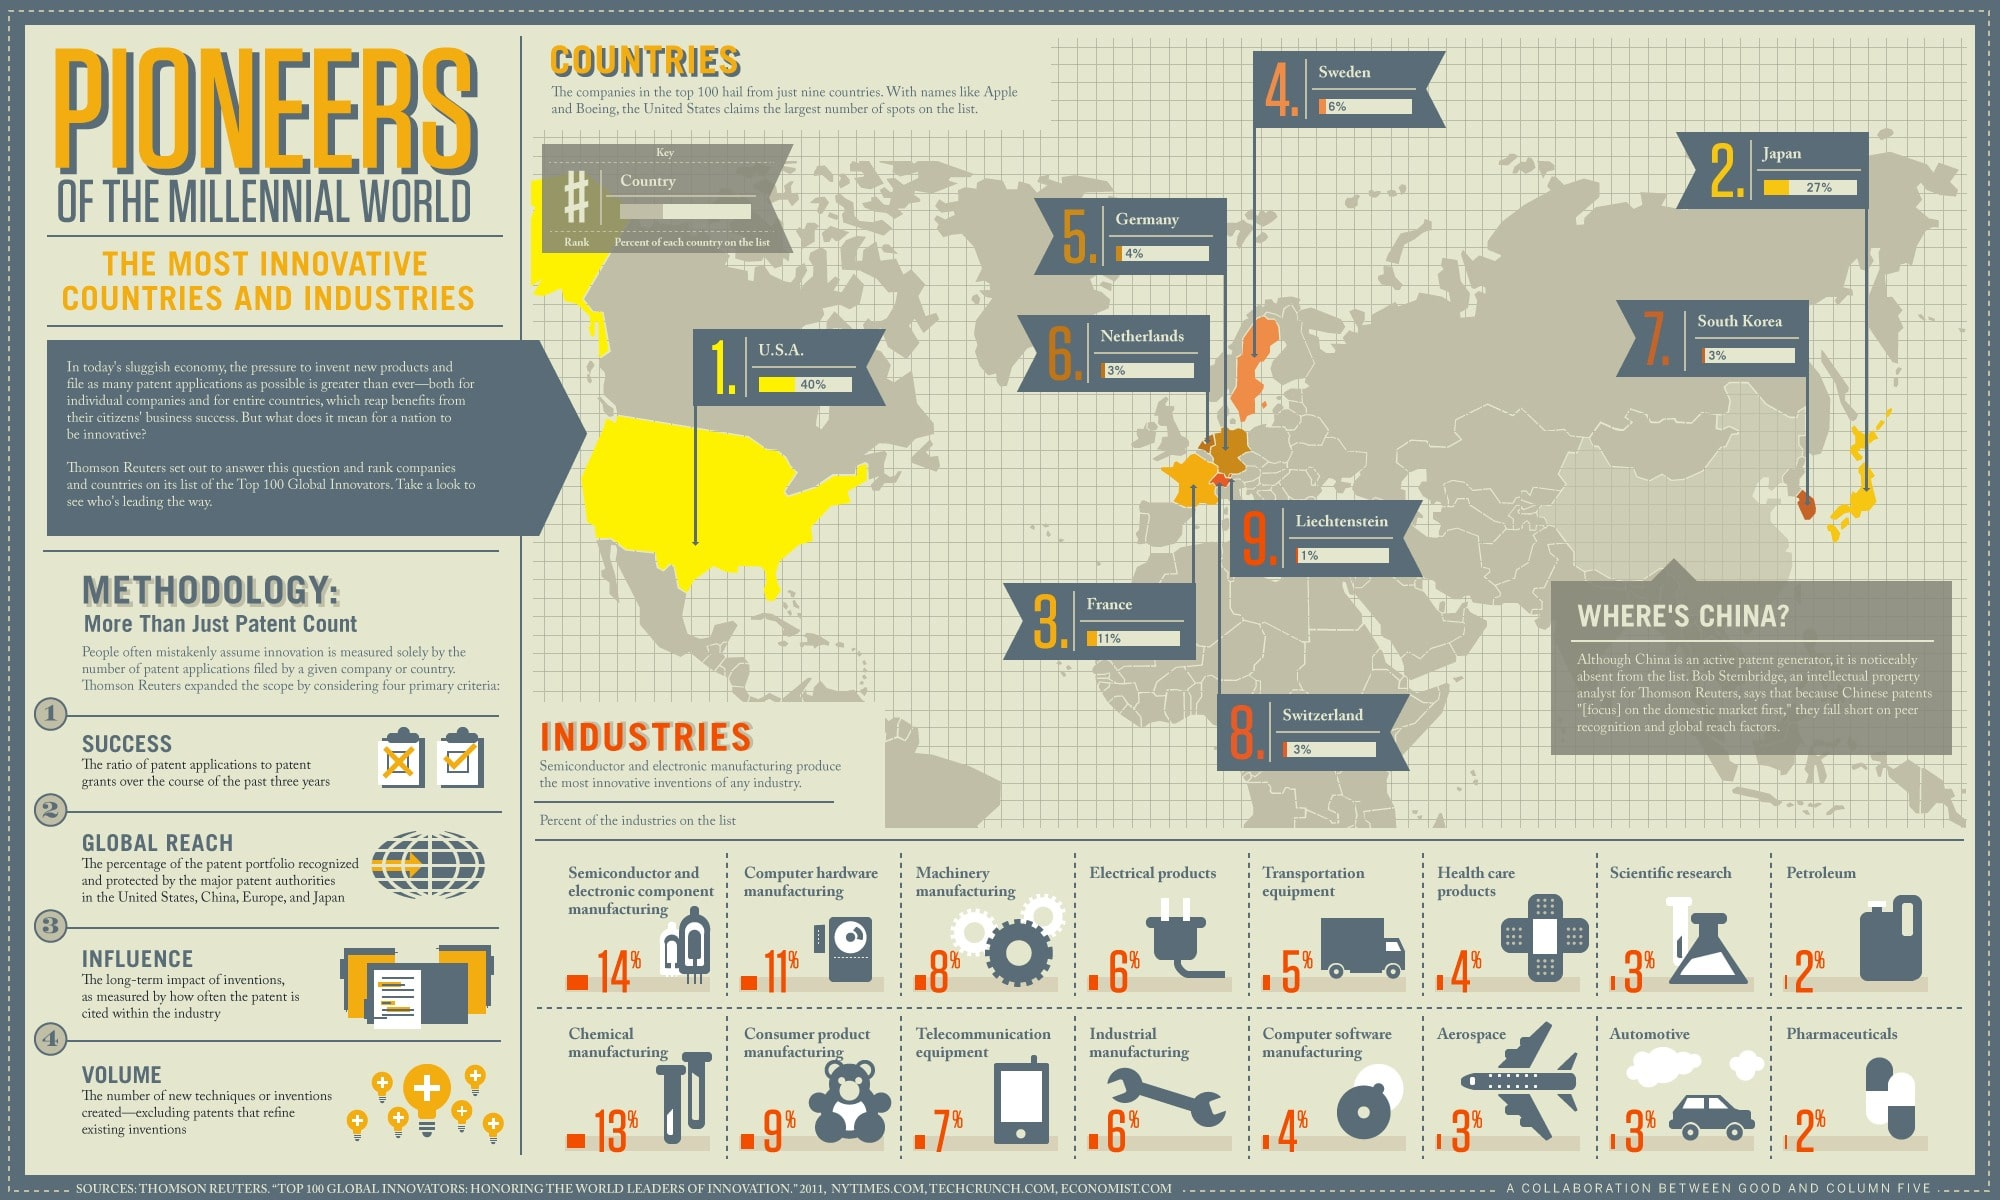 World's Most Innovative Countries [Infographic]